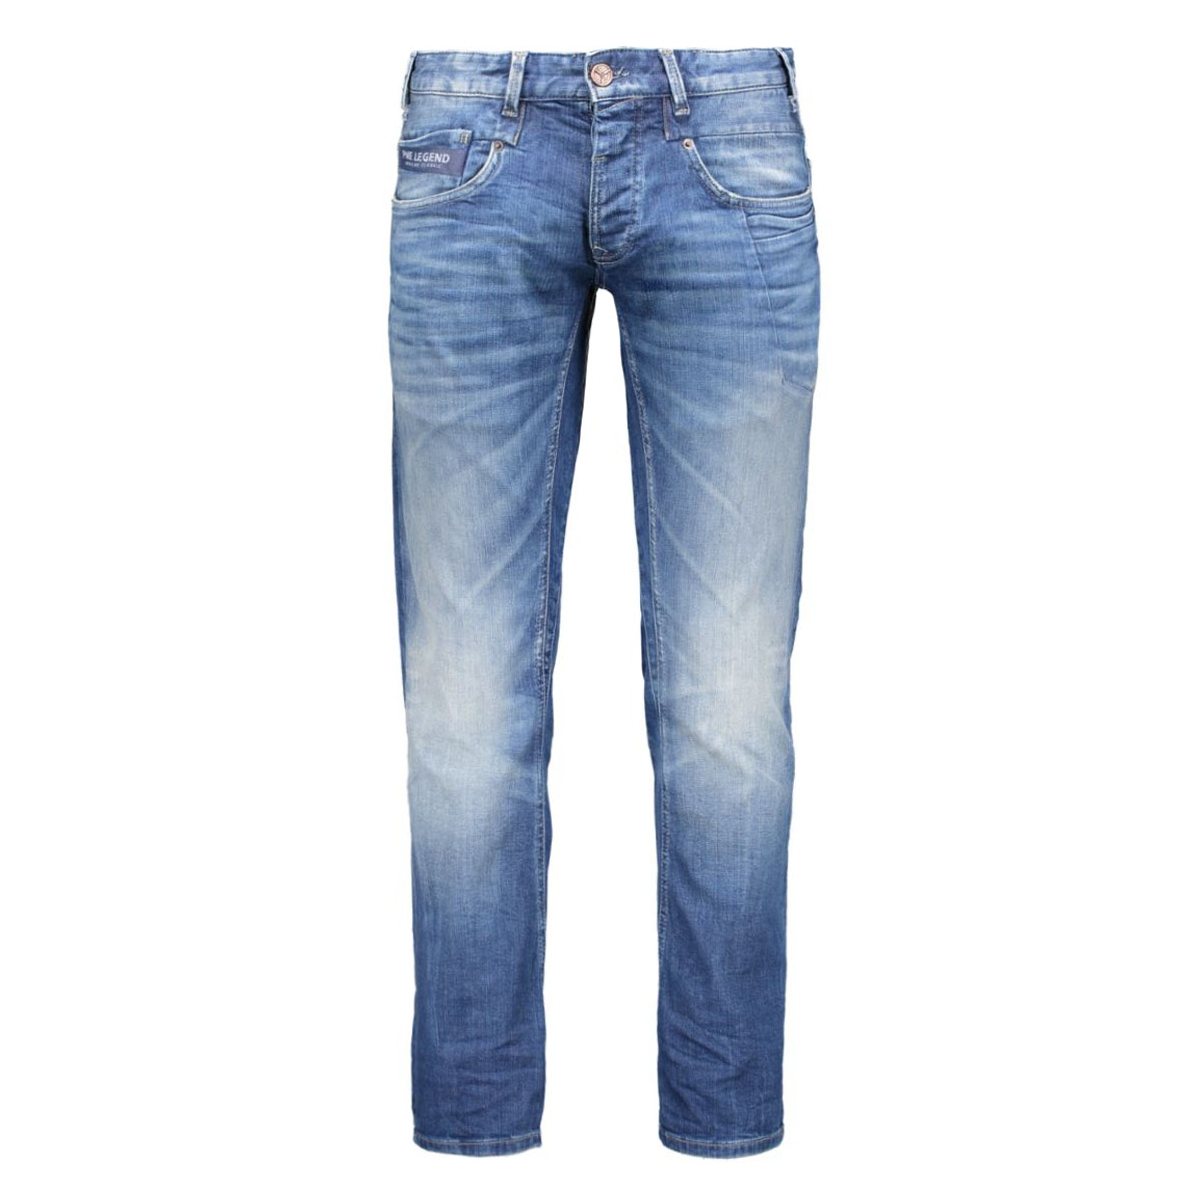 commander 2 ptr985 pme legend jeans bbw